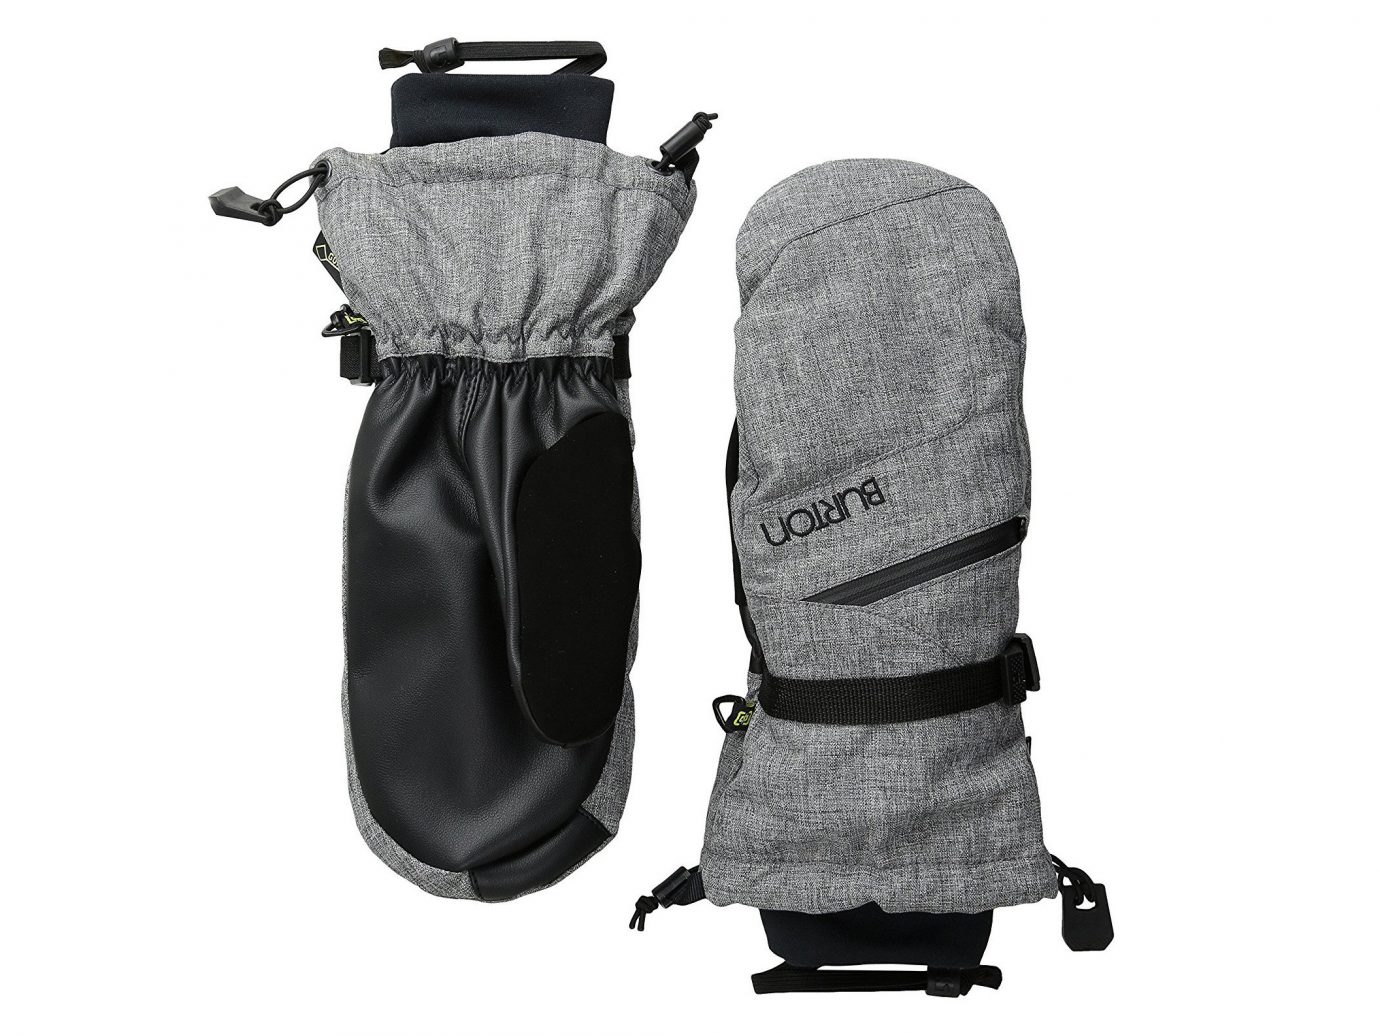 Mountains + Skiing Style + Design Travel Shop product car seat cover product design comfort clothes